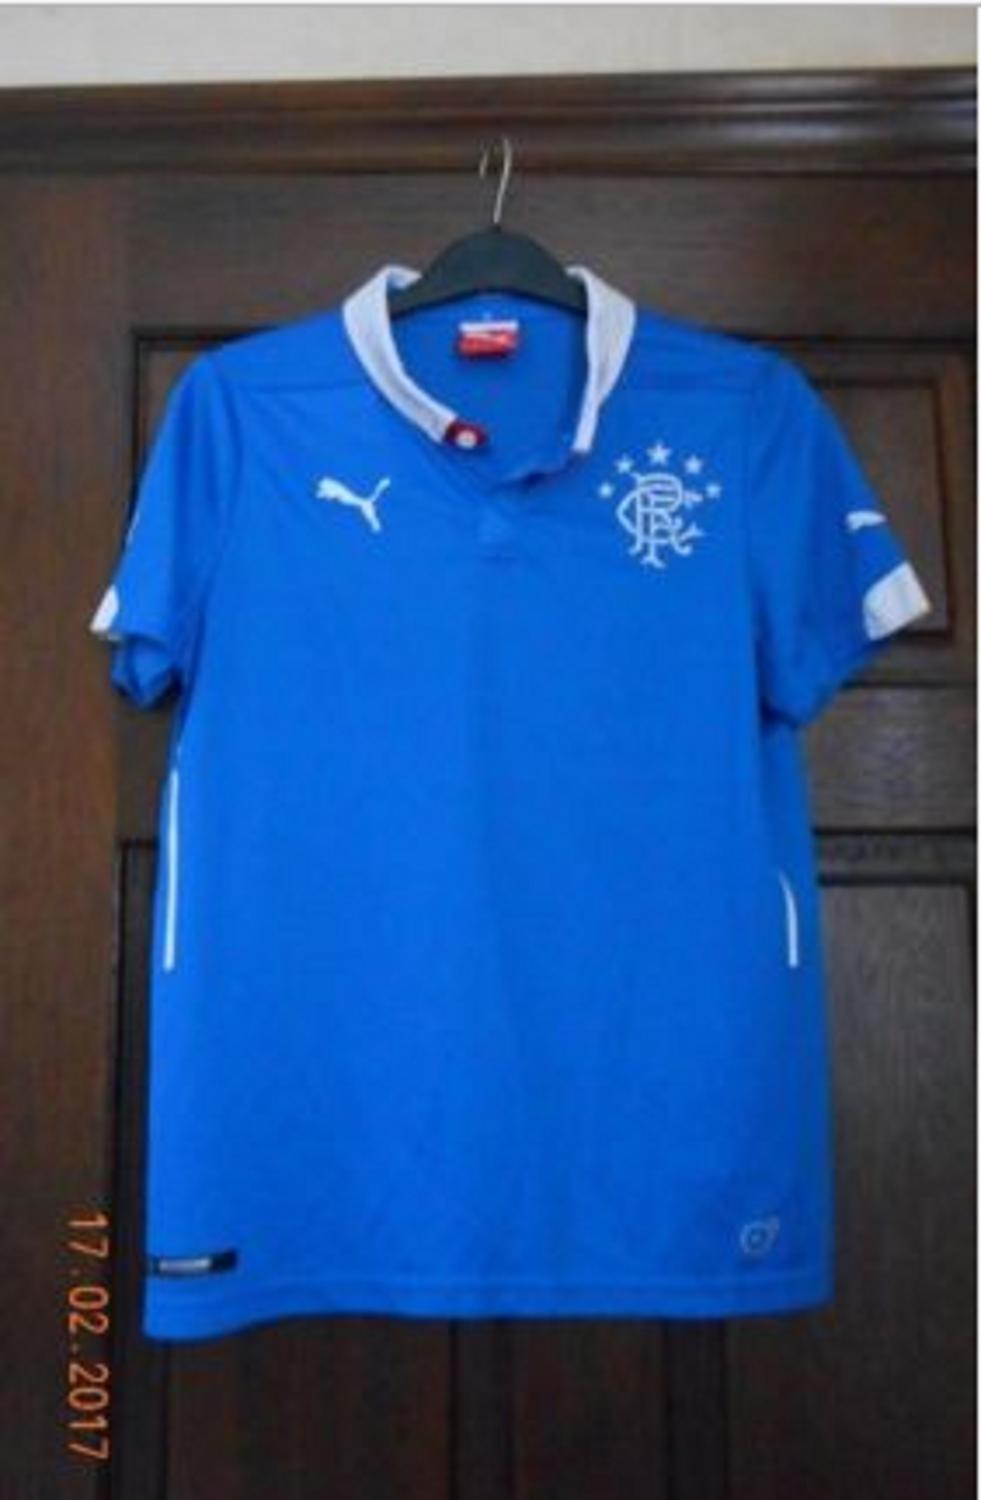 9f375db36 Rangers Home camisa de futebol 2014 - 2015. Sponsored by no sponsor